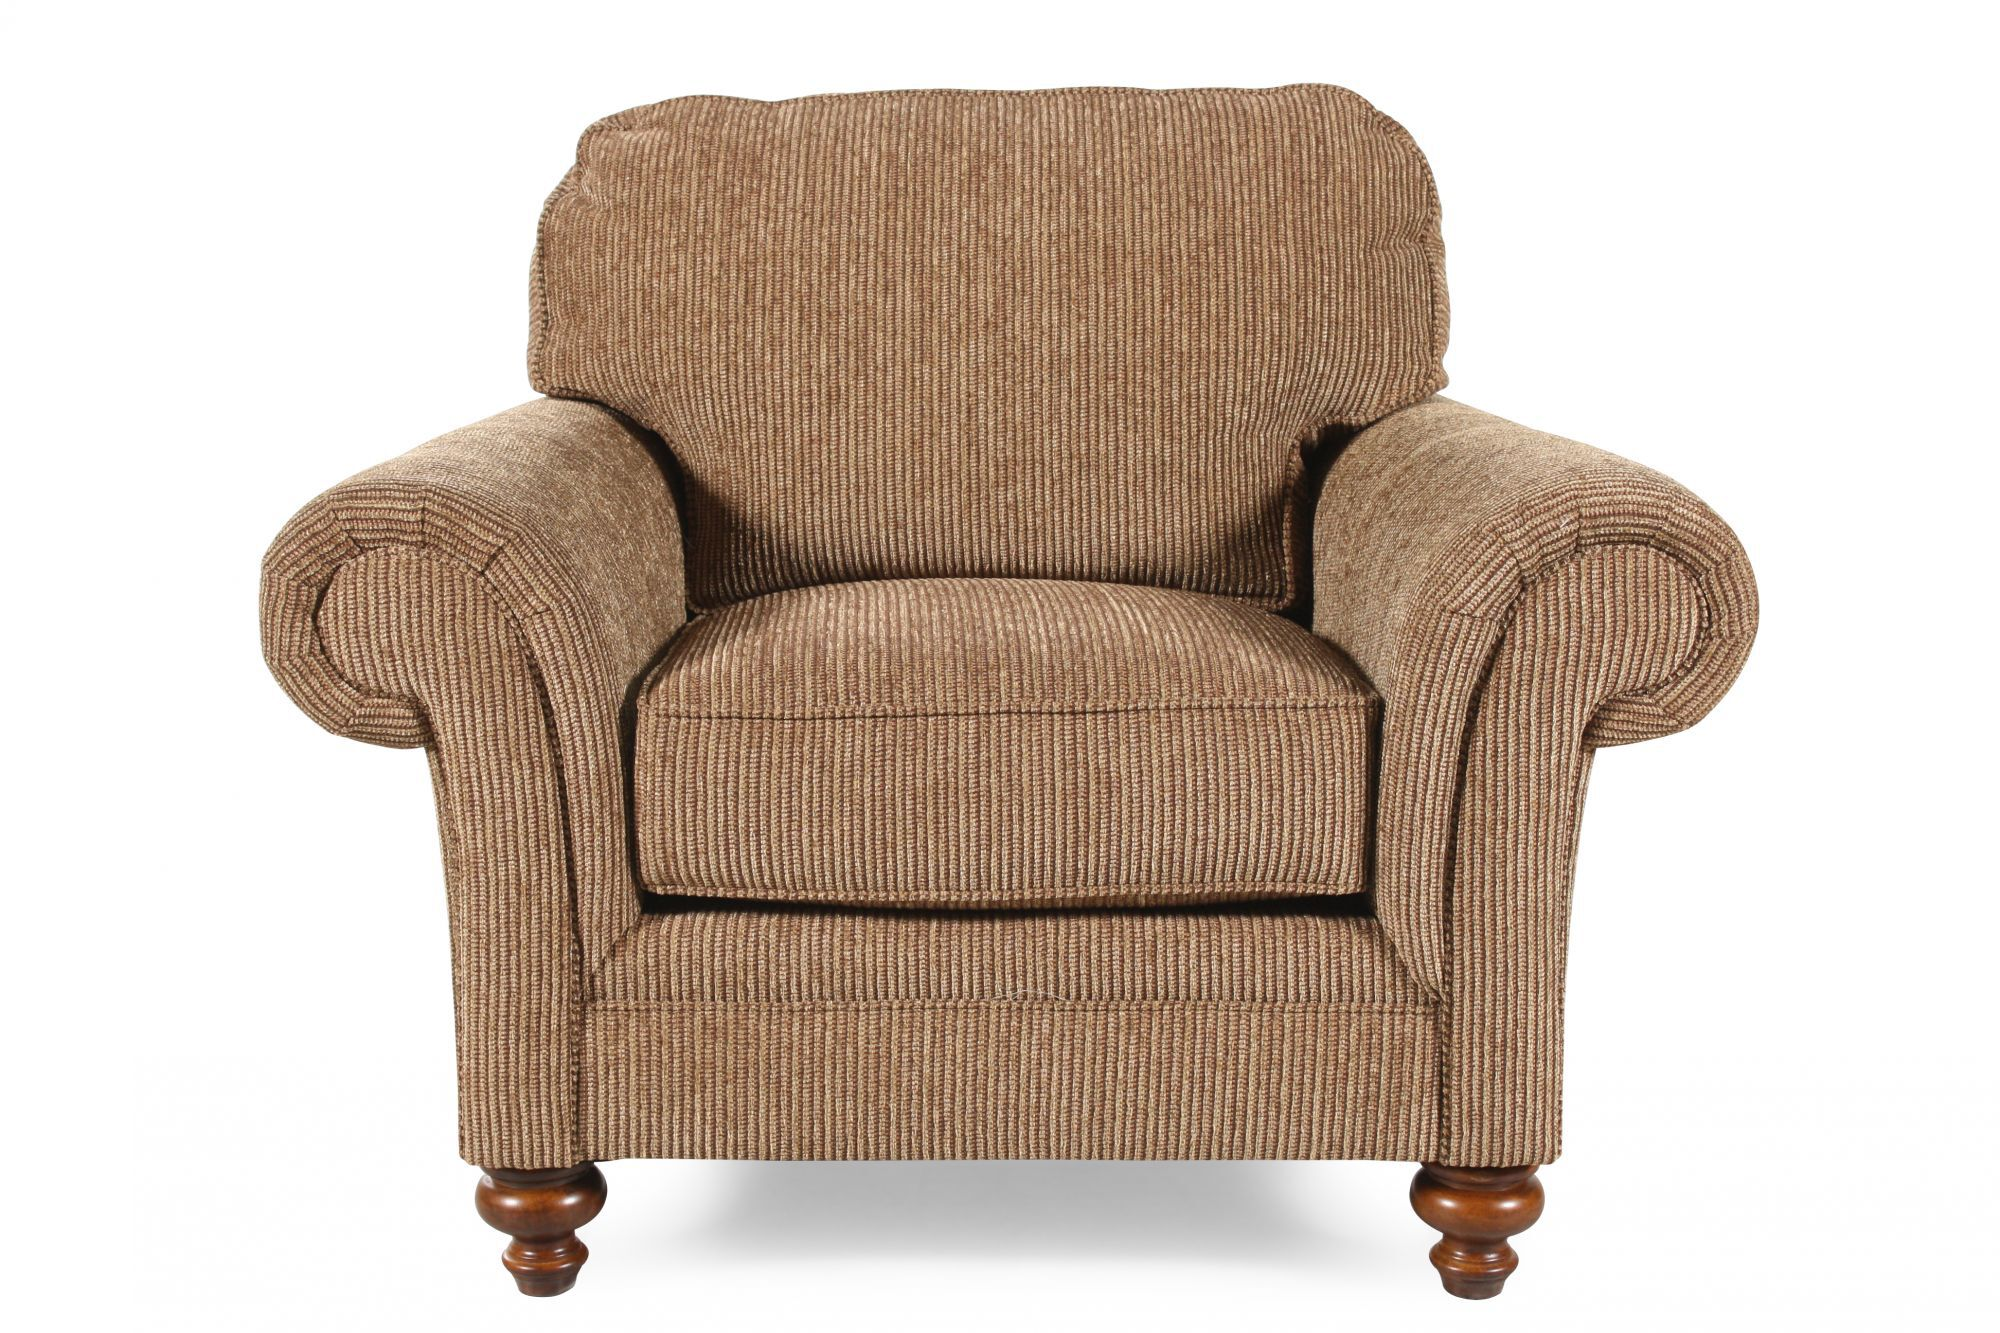 Textured Traditional 44u0026quot; Chair in ...  sc 1 st  Mathis Brothers & Living Room Chairs - Swivel Chairs | Mathis Brothers